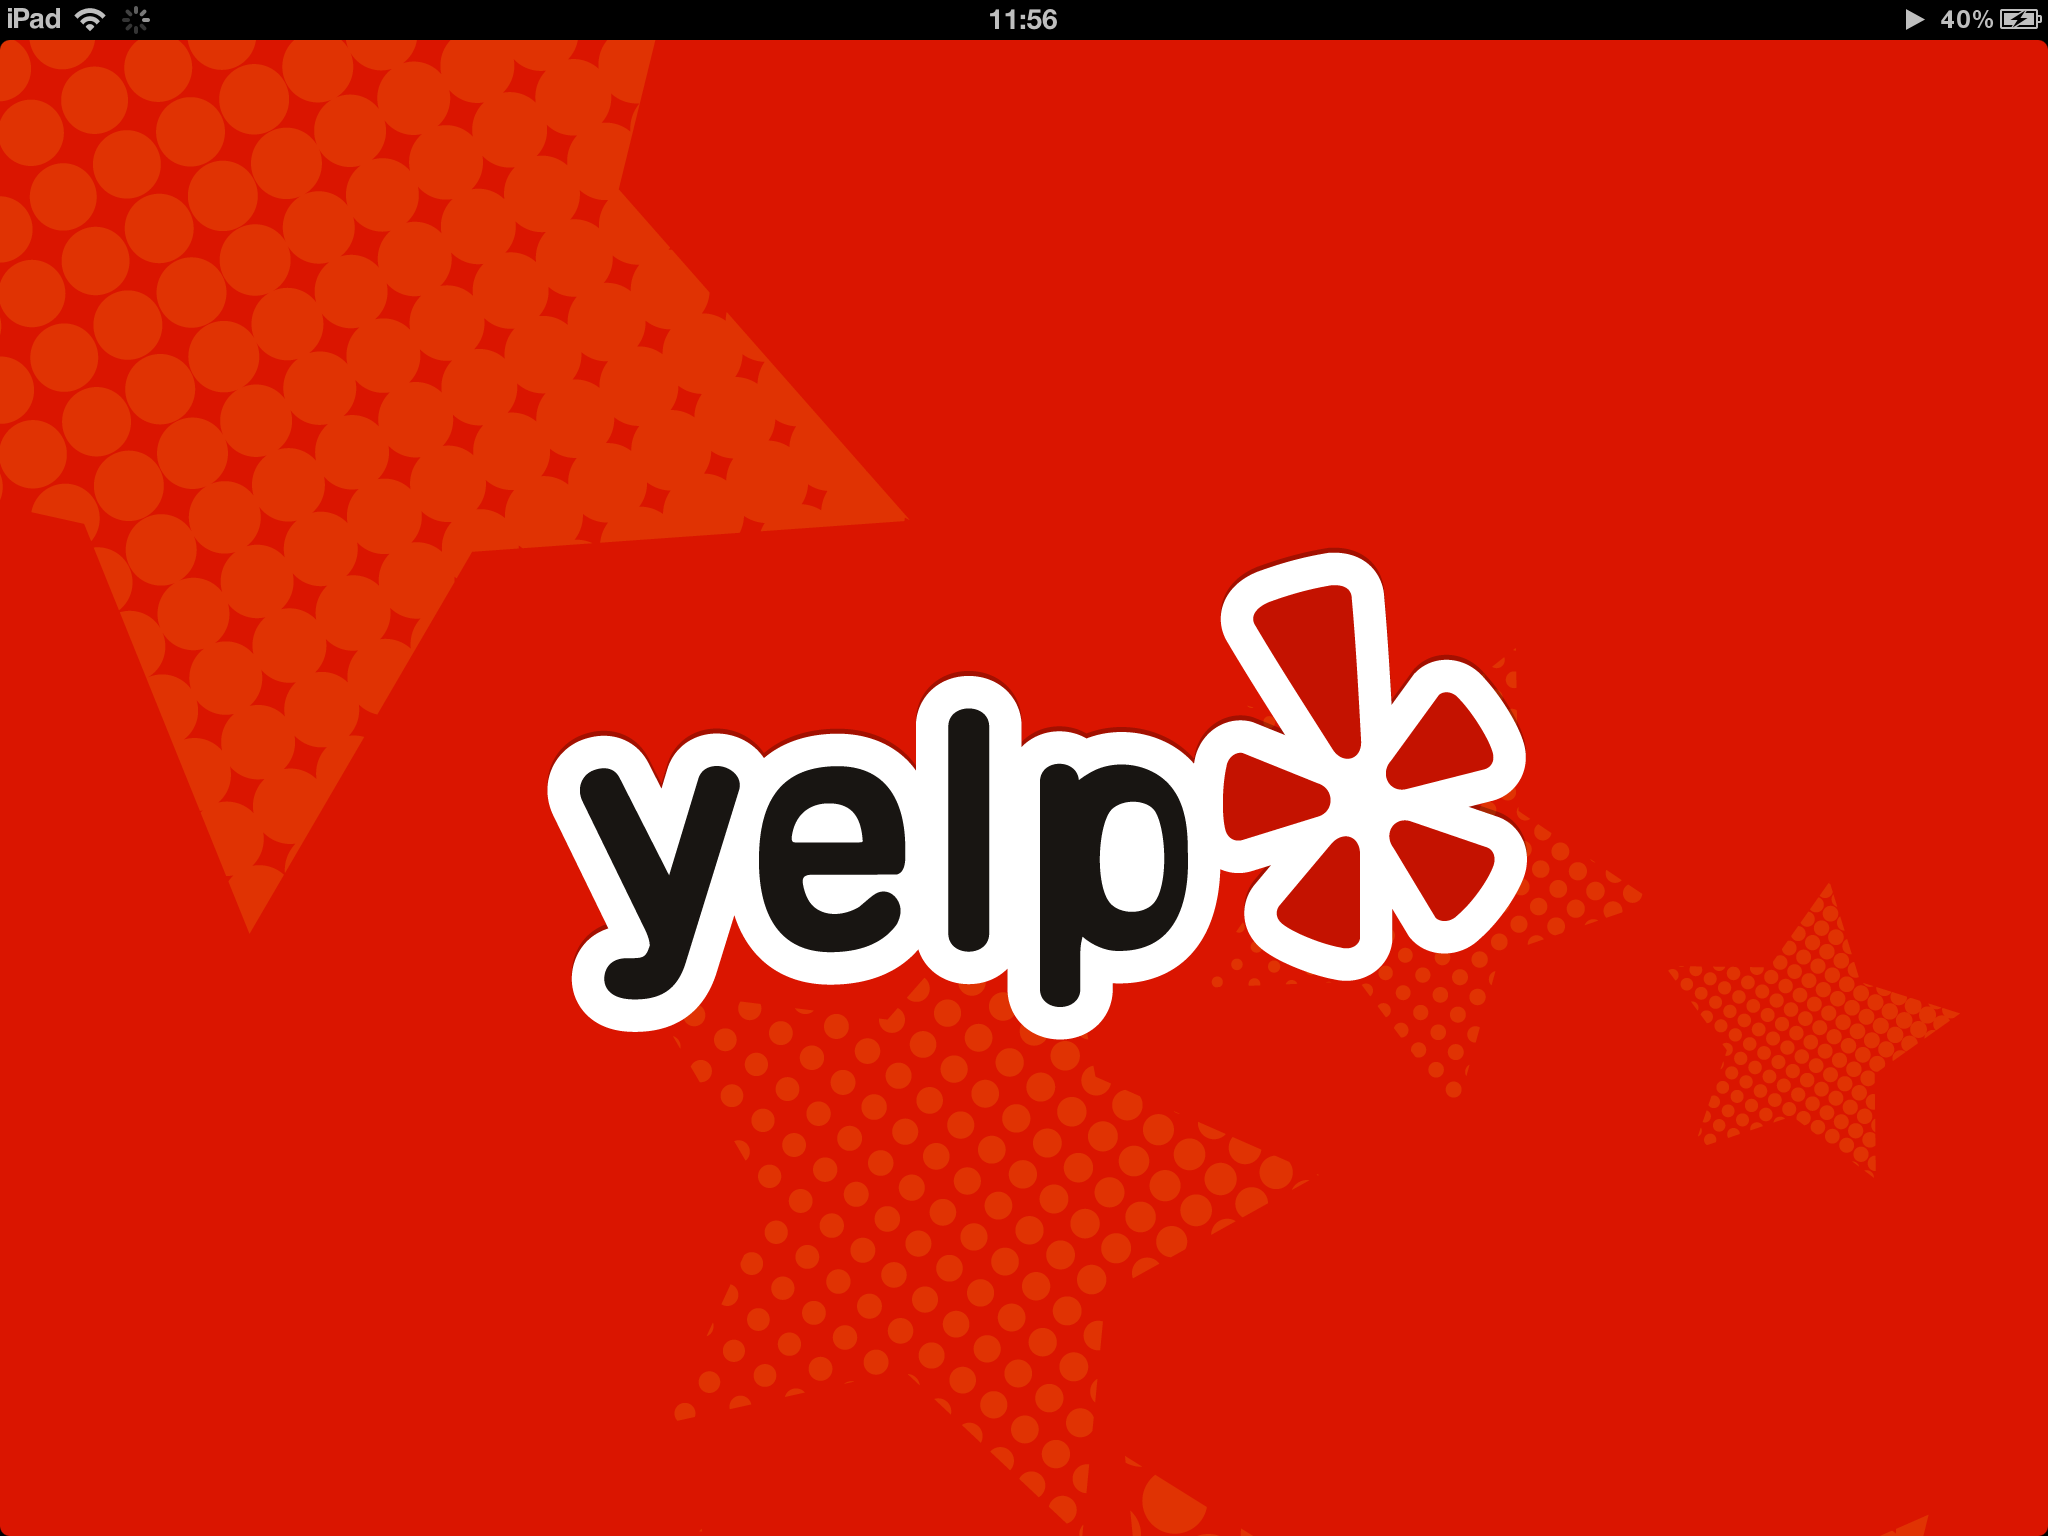 Yelp 6.0 Is Here To Help You Find The Best Places In Town